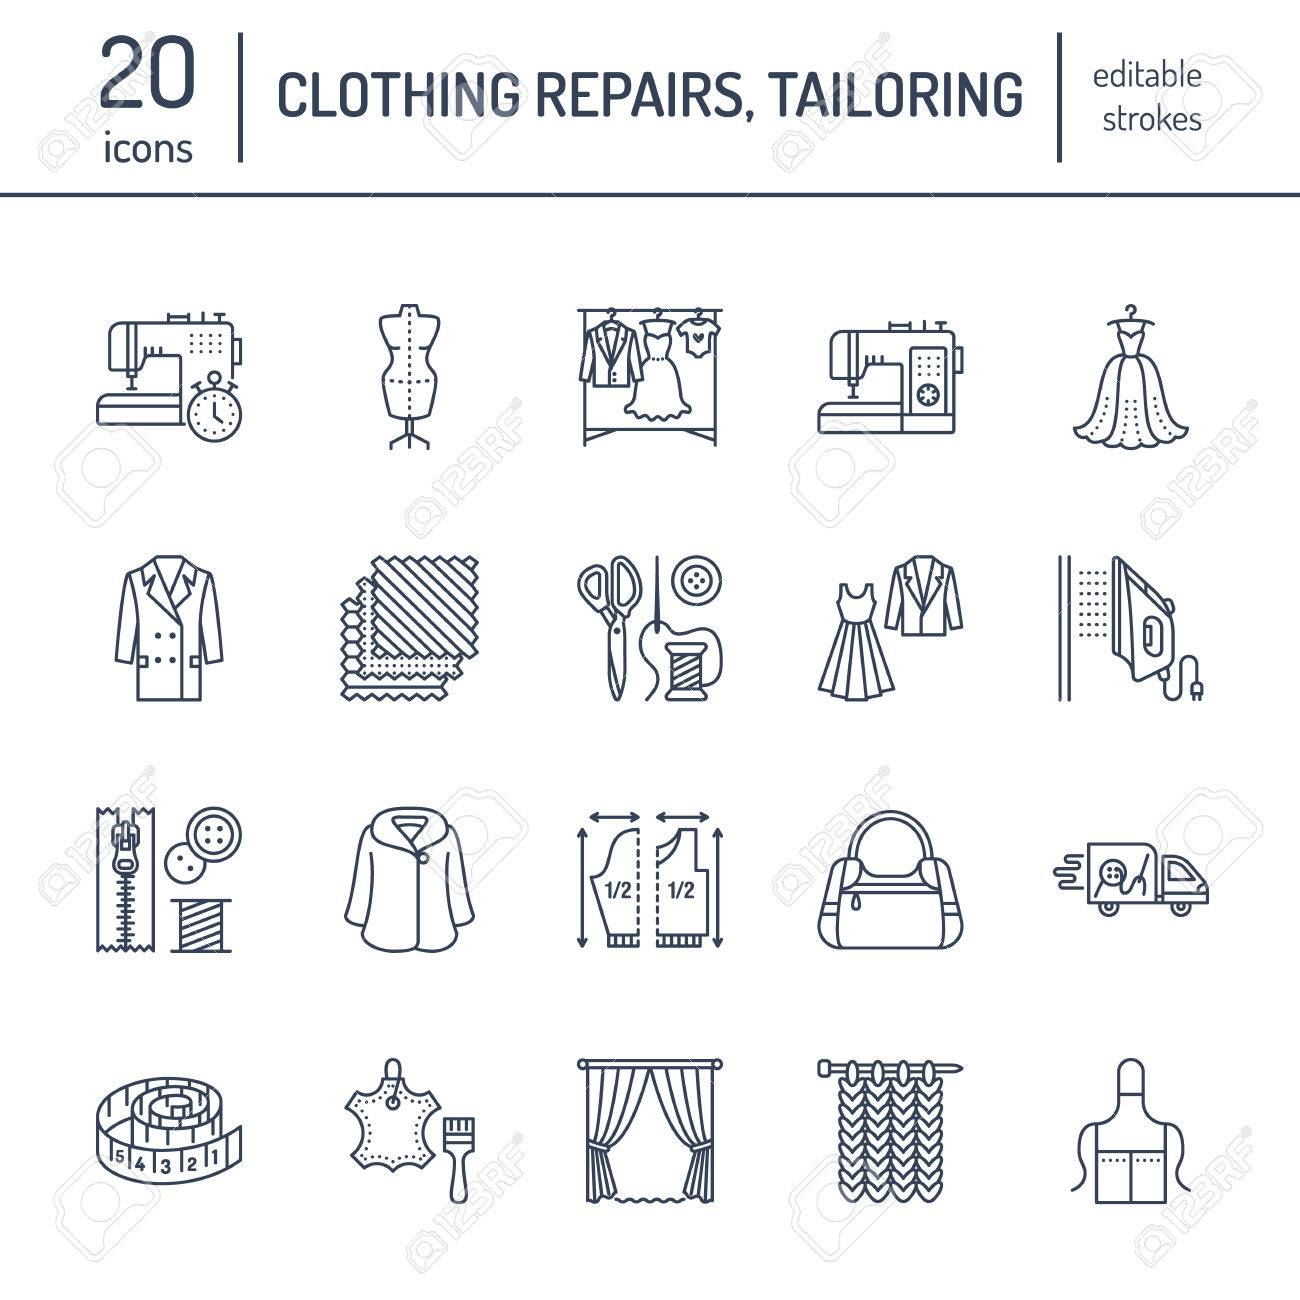 Clothing repair, alterations flat line icons set. Tailor store services - dressmaking, clothes steaming, curtains sewing. Linear signs set, logos for atelier. - 80108858